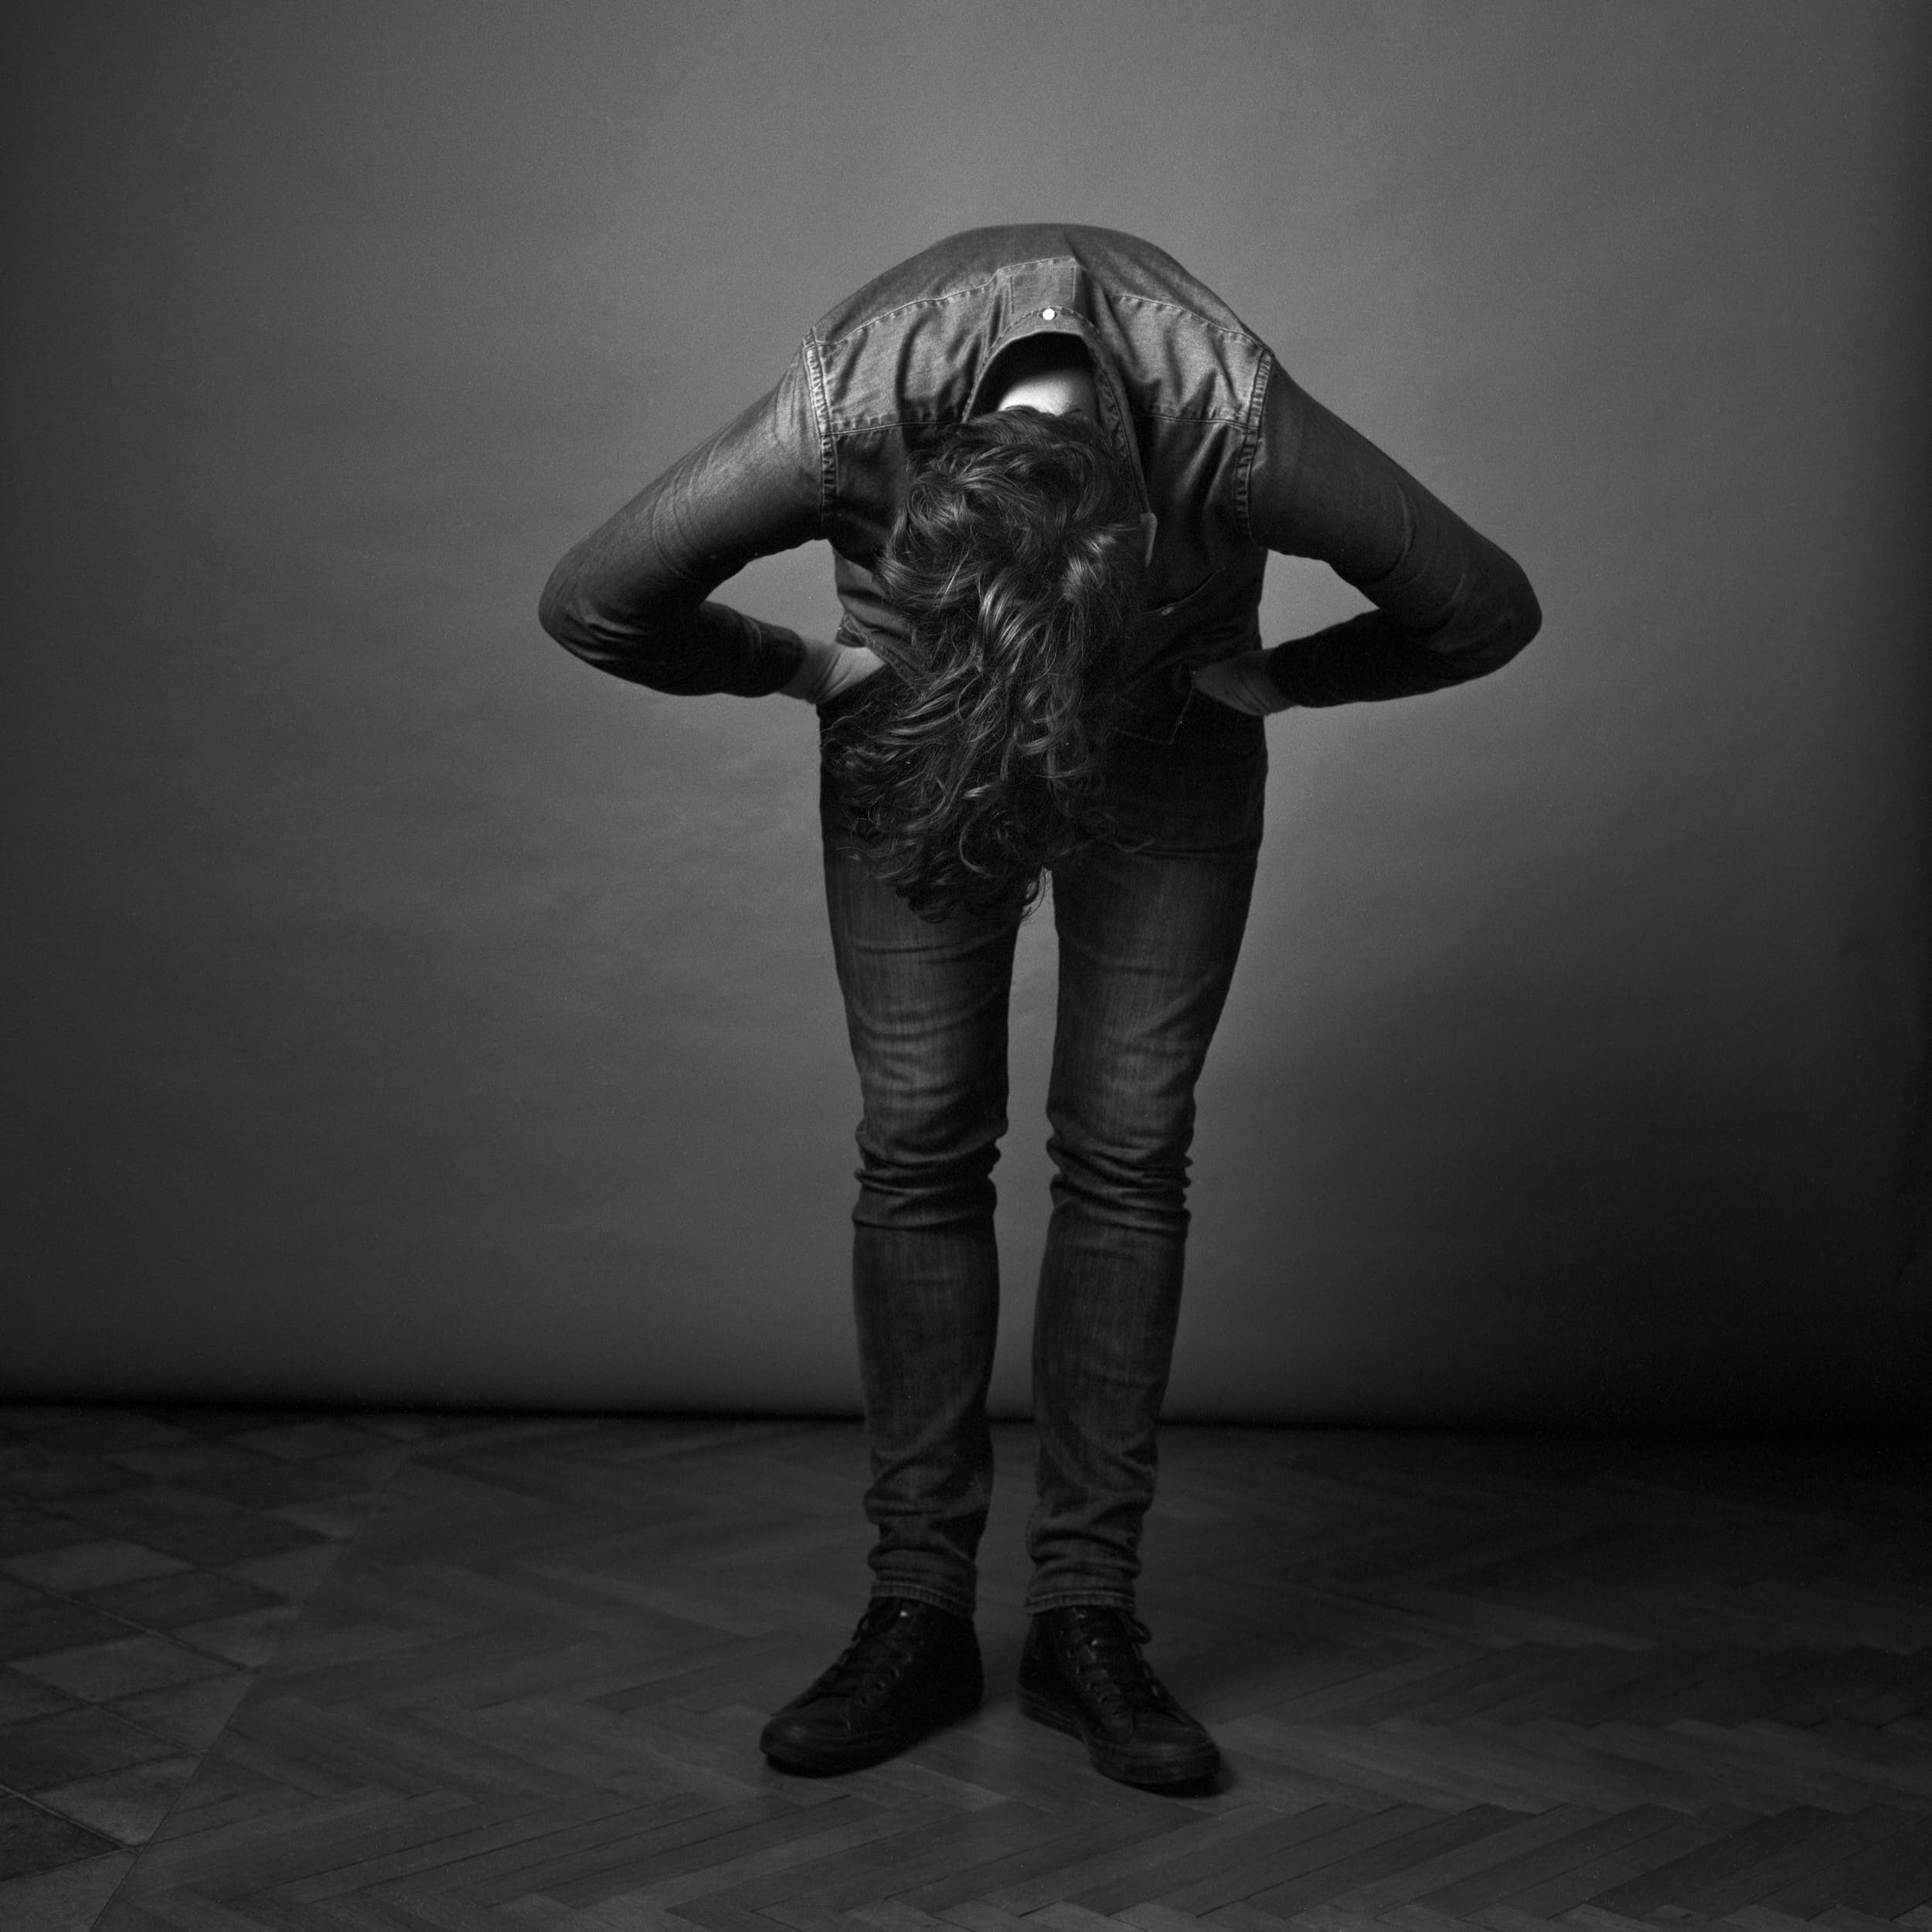 Medium format black and white film photography: man adjusting his hair in front of a grey background